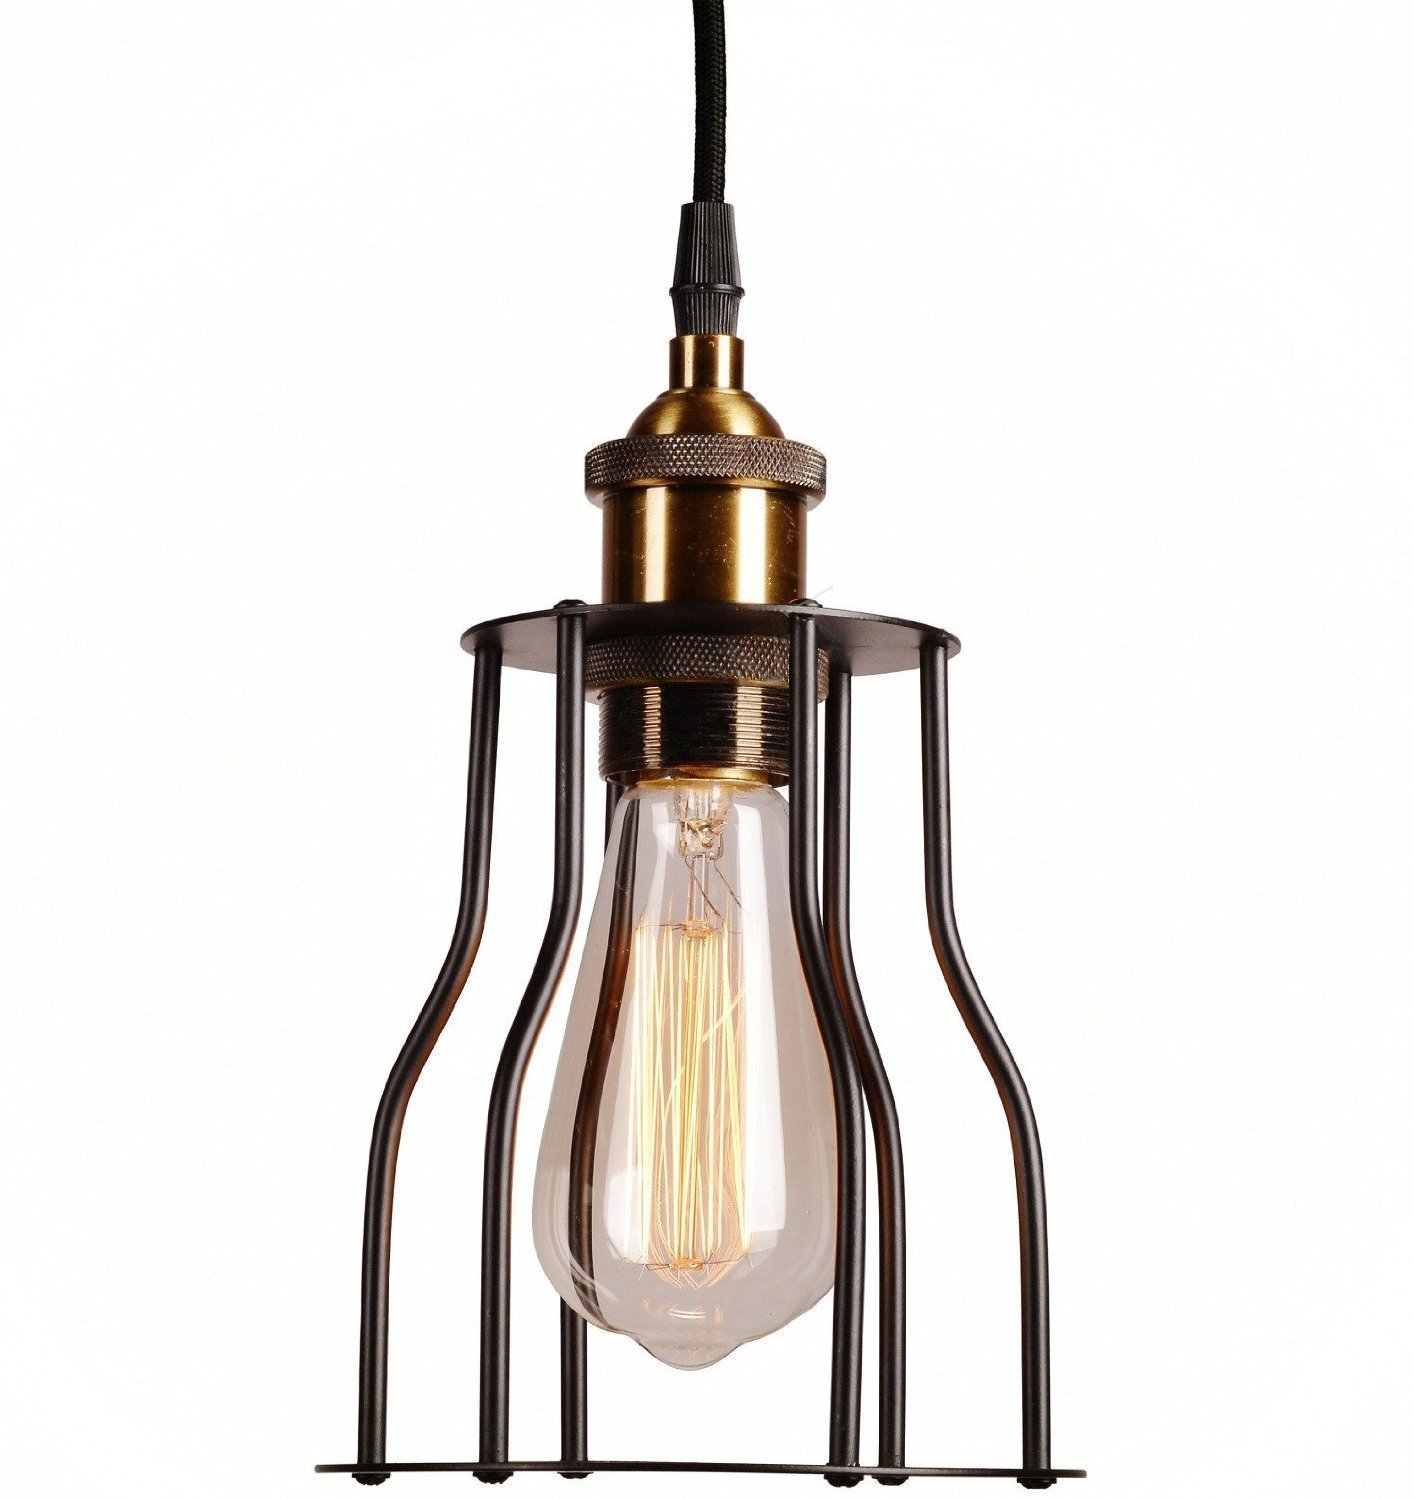 LIGHTESS Kitchen Pendant Light Industrial Hanging Ceiling Lighting Fixtures Metal Mini Cage Pendant Lamp Black, CY-Y1